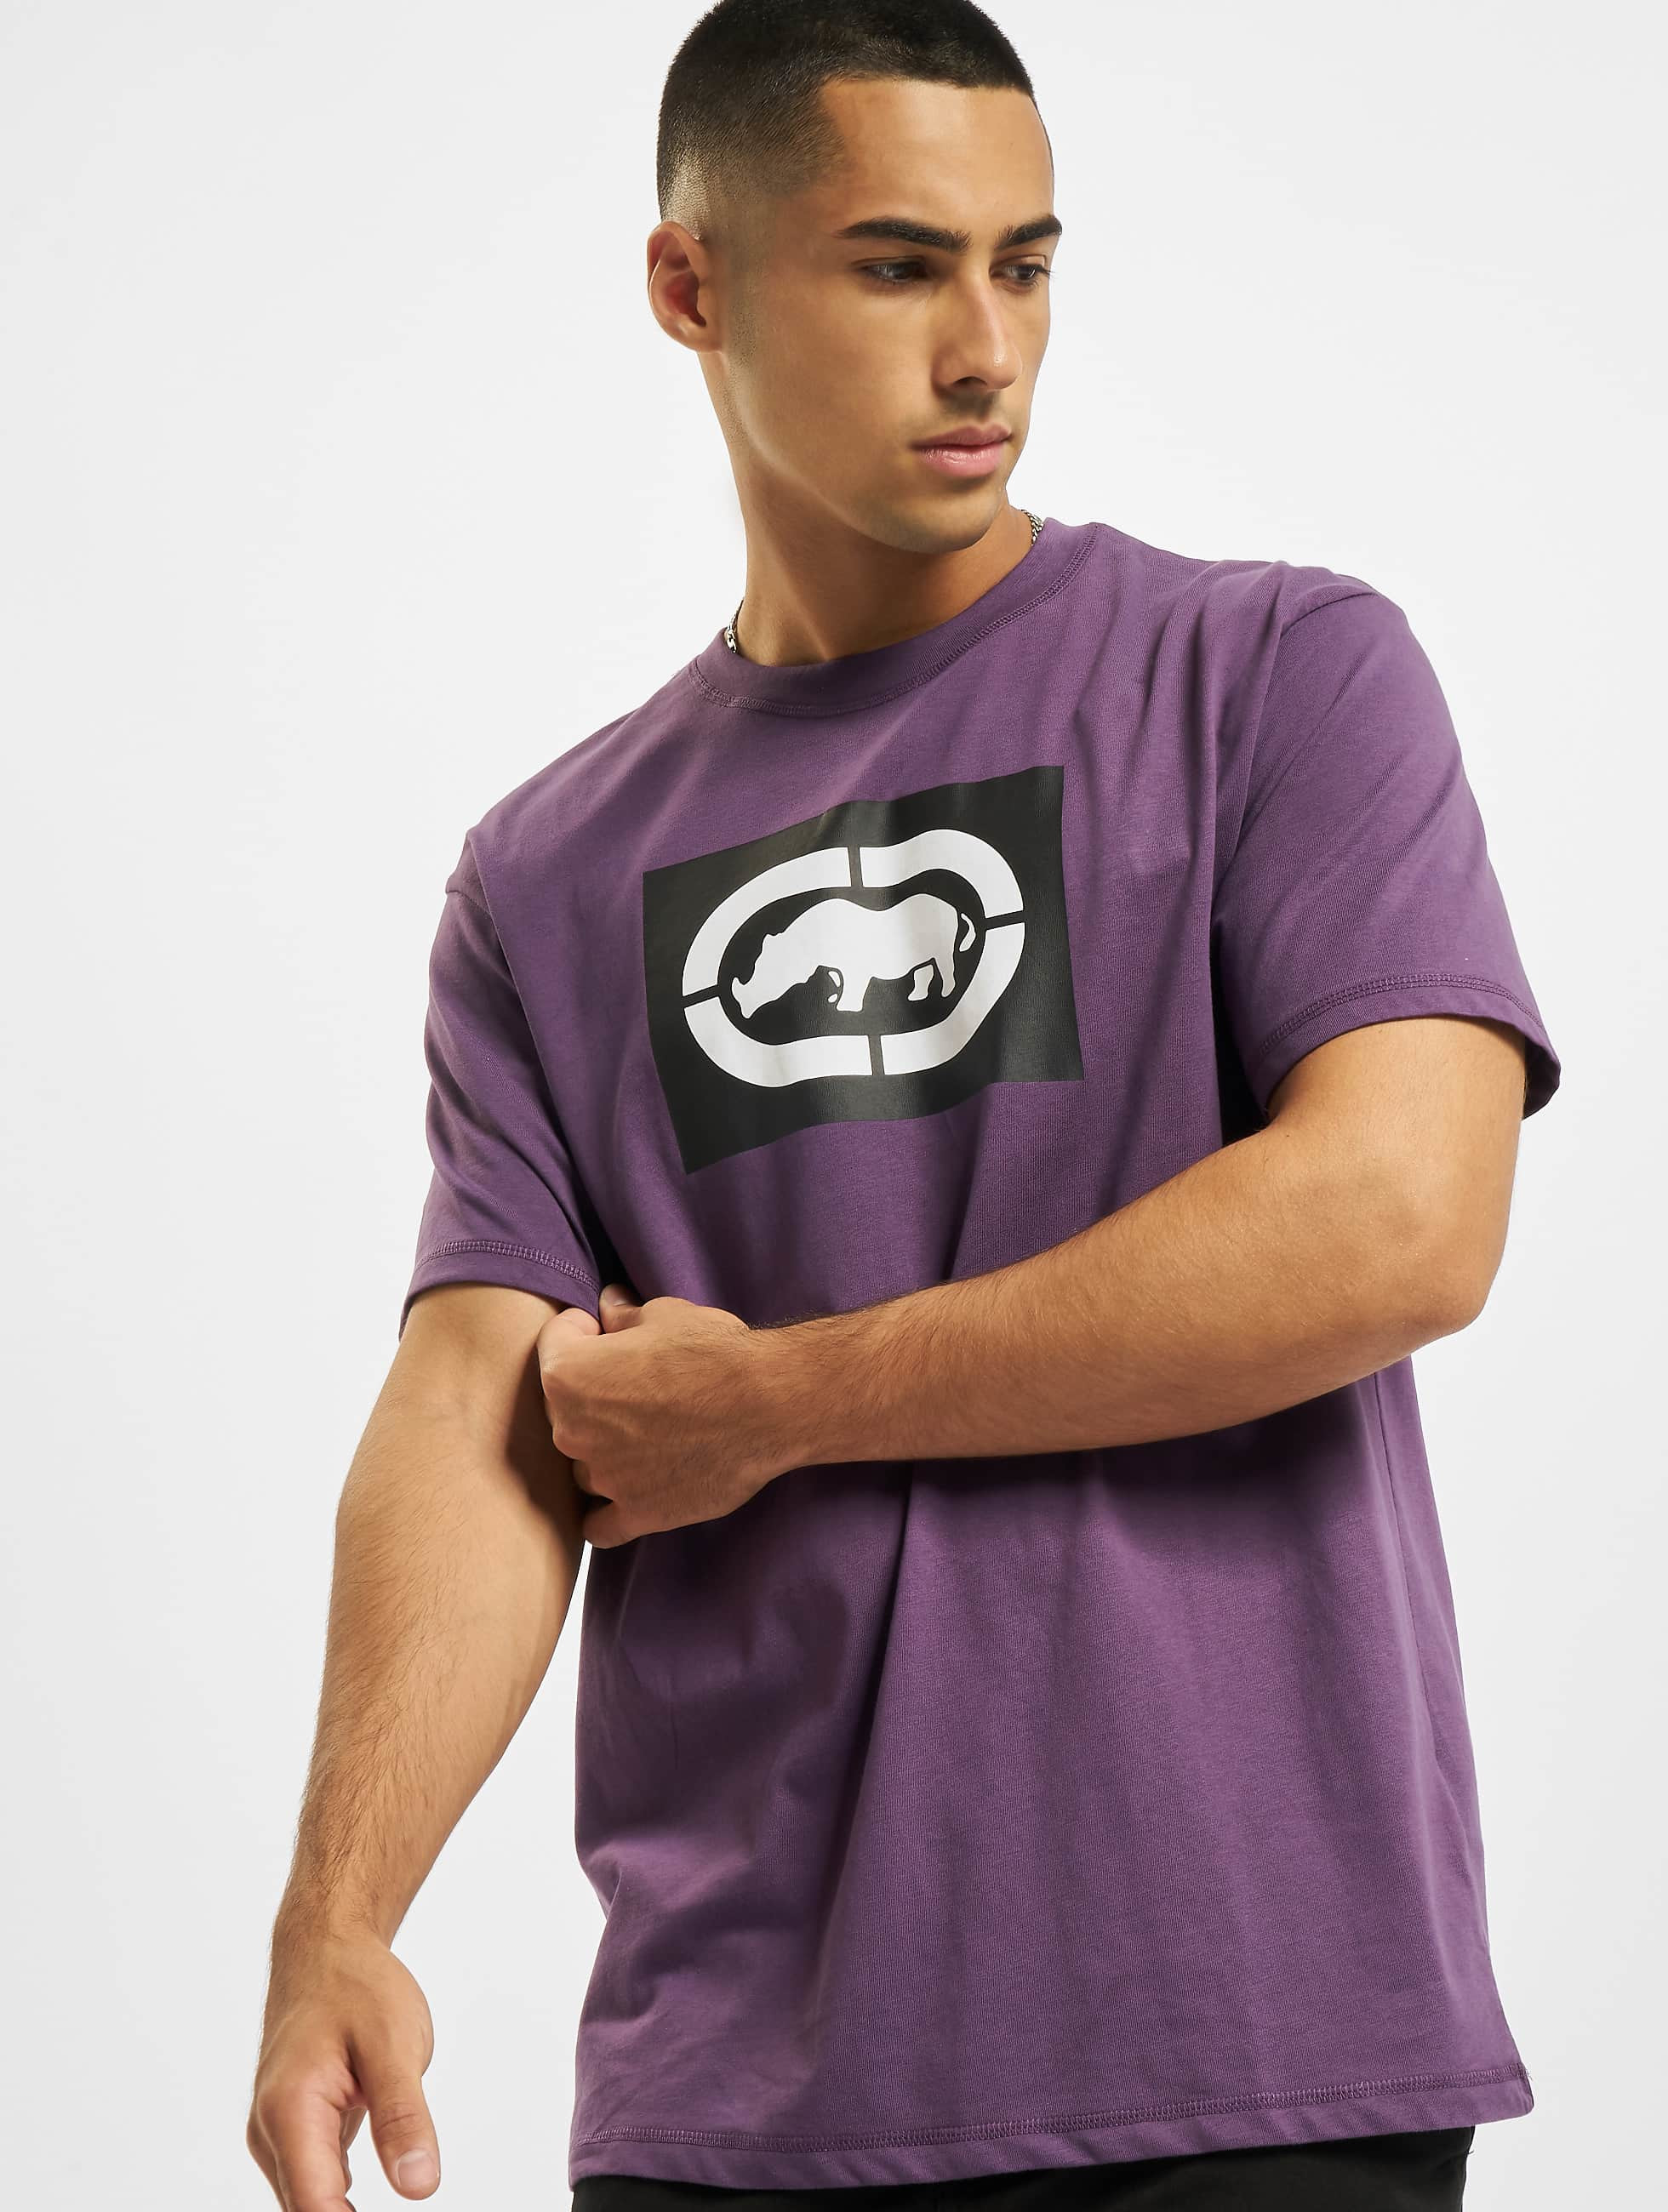 Ecko Unltd. / T-Shirt Base in purple 2XL